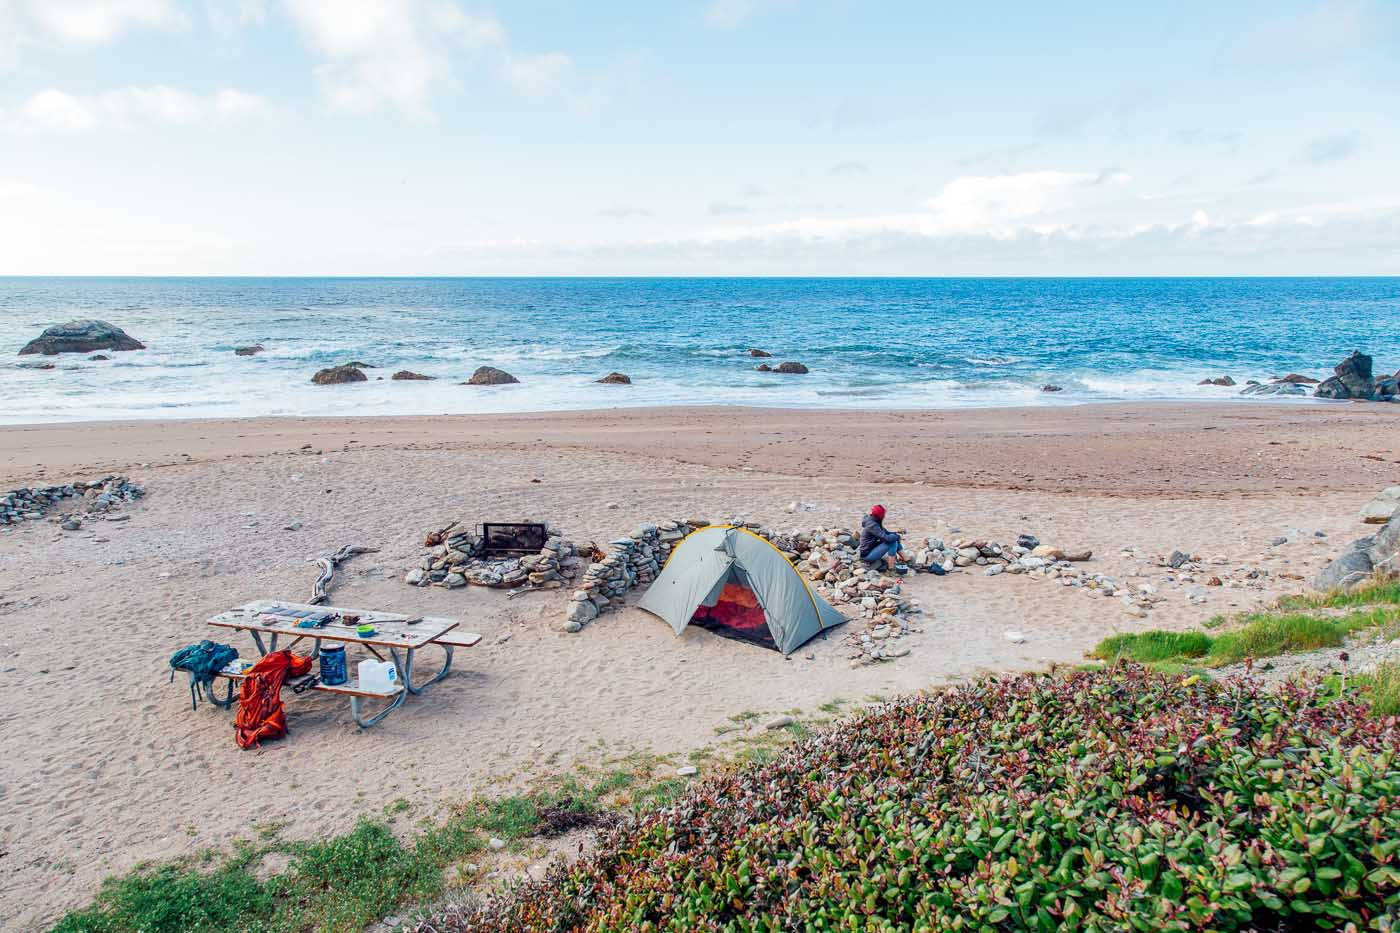 A tent set up in the sand at Parson's Landing campground with the ocean in the background.